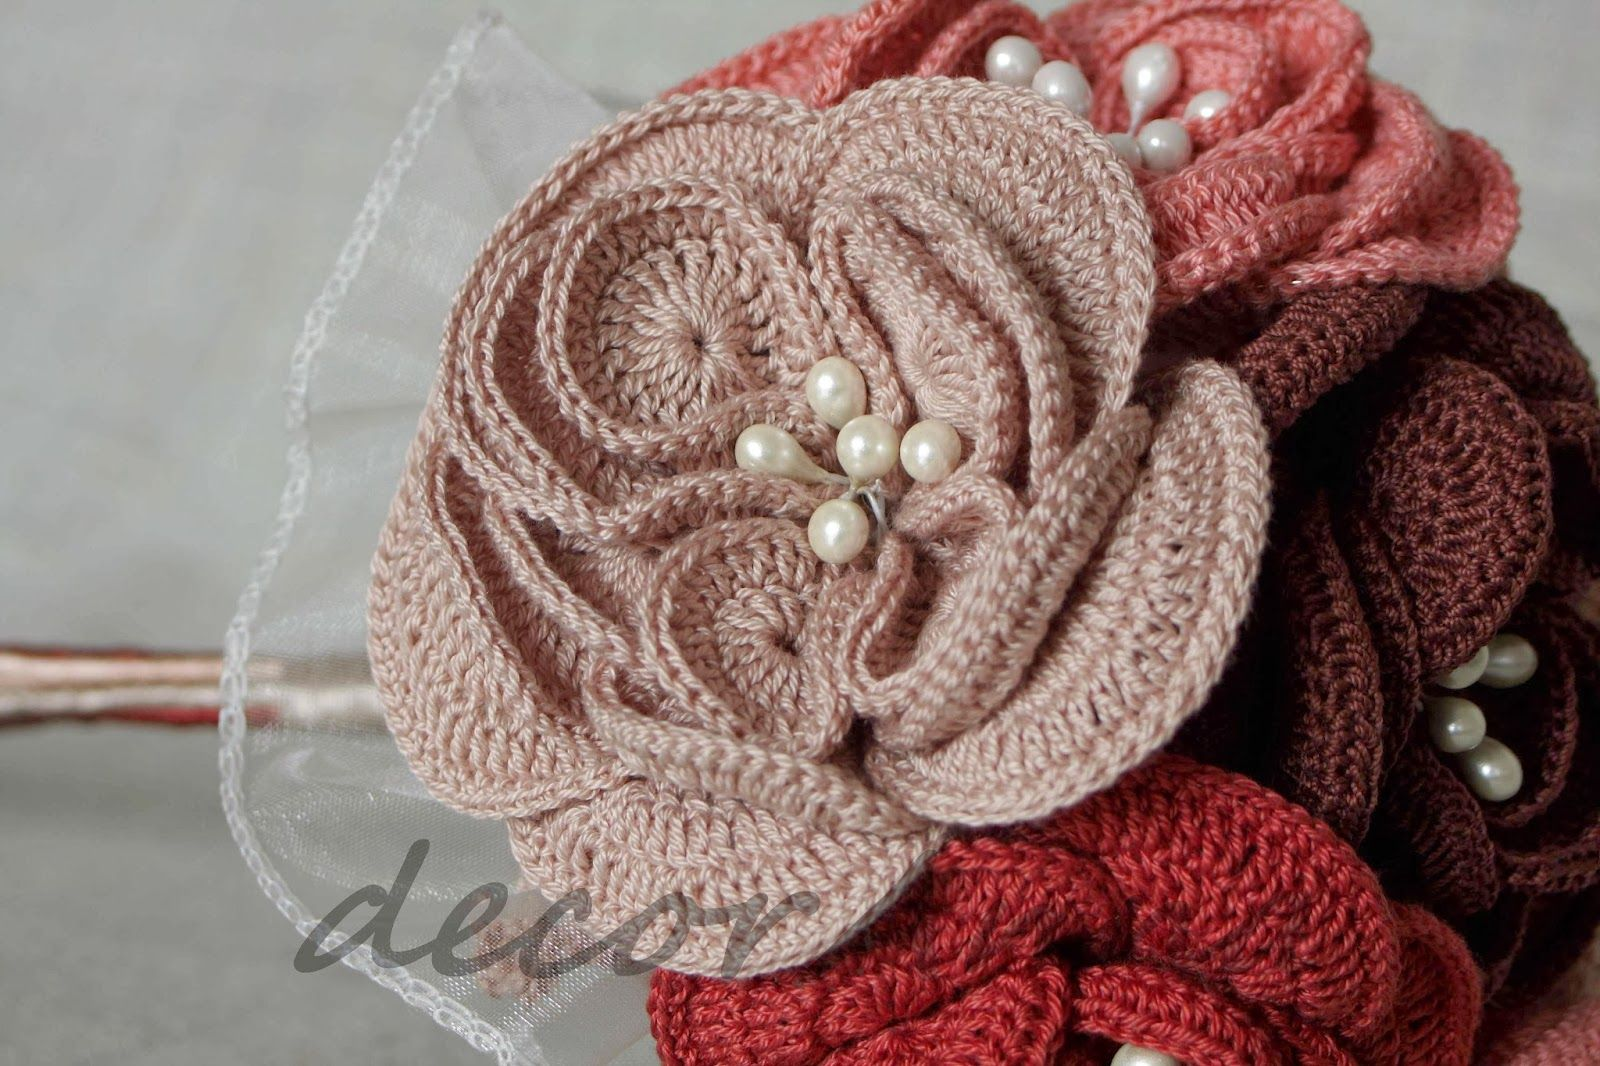 Each crochet flower with pearl beads alternative wedding bouquets each crochet flower with pearl beads izmirmasajfo